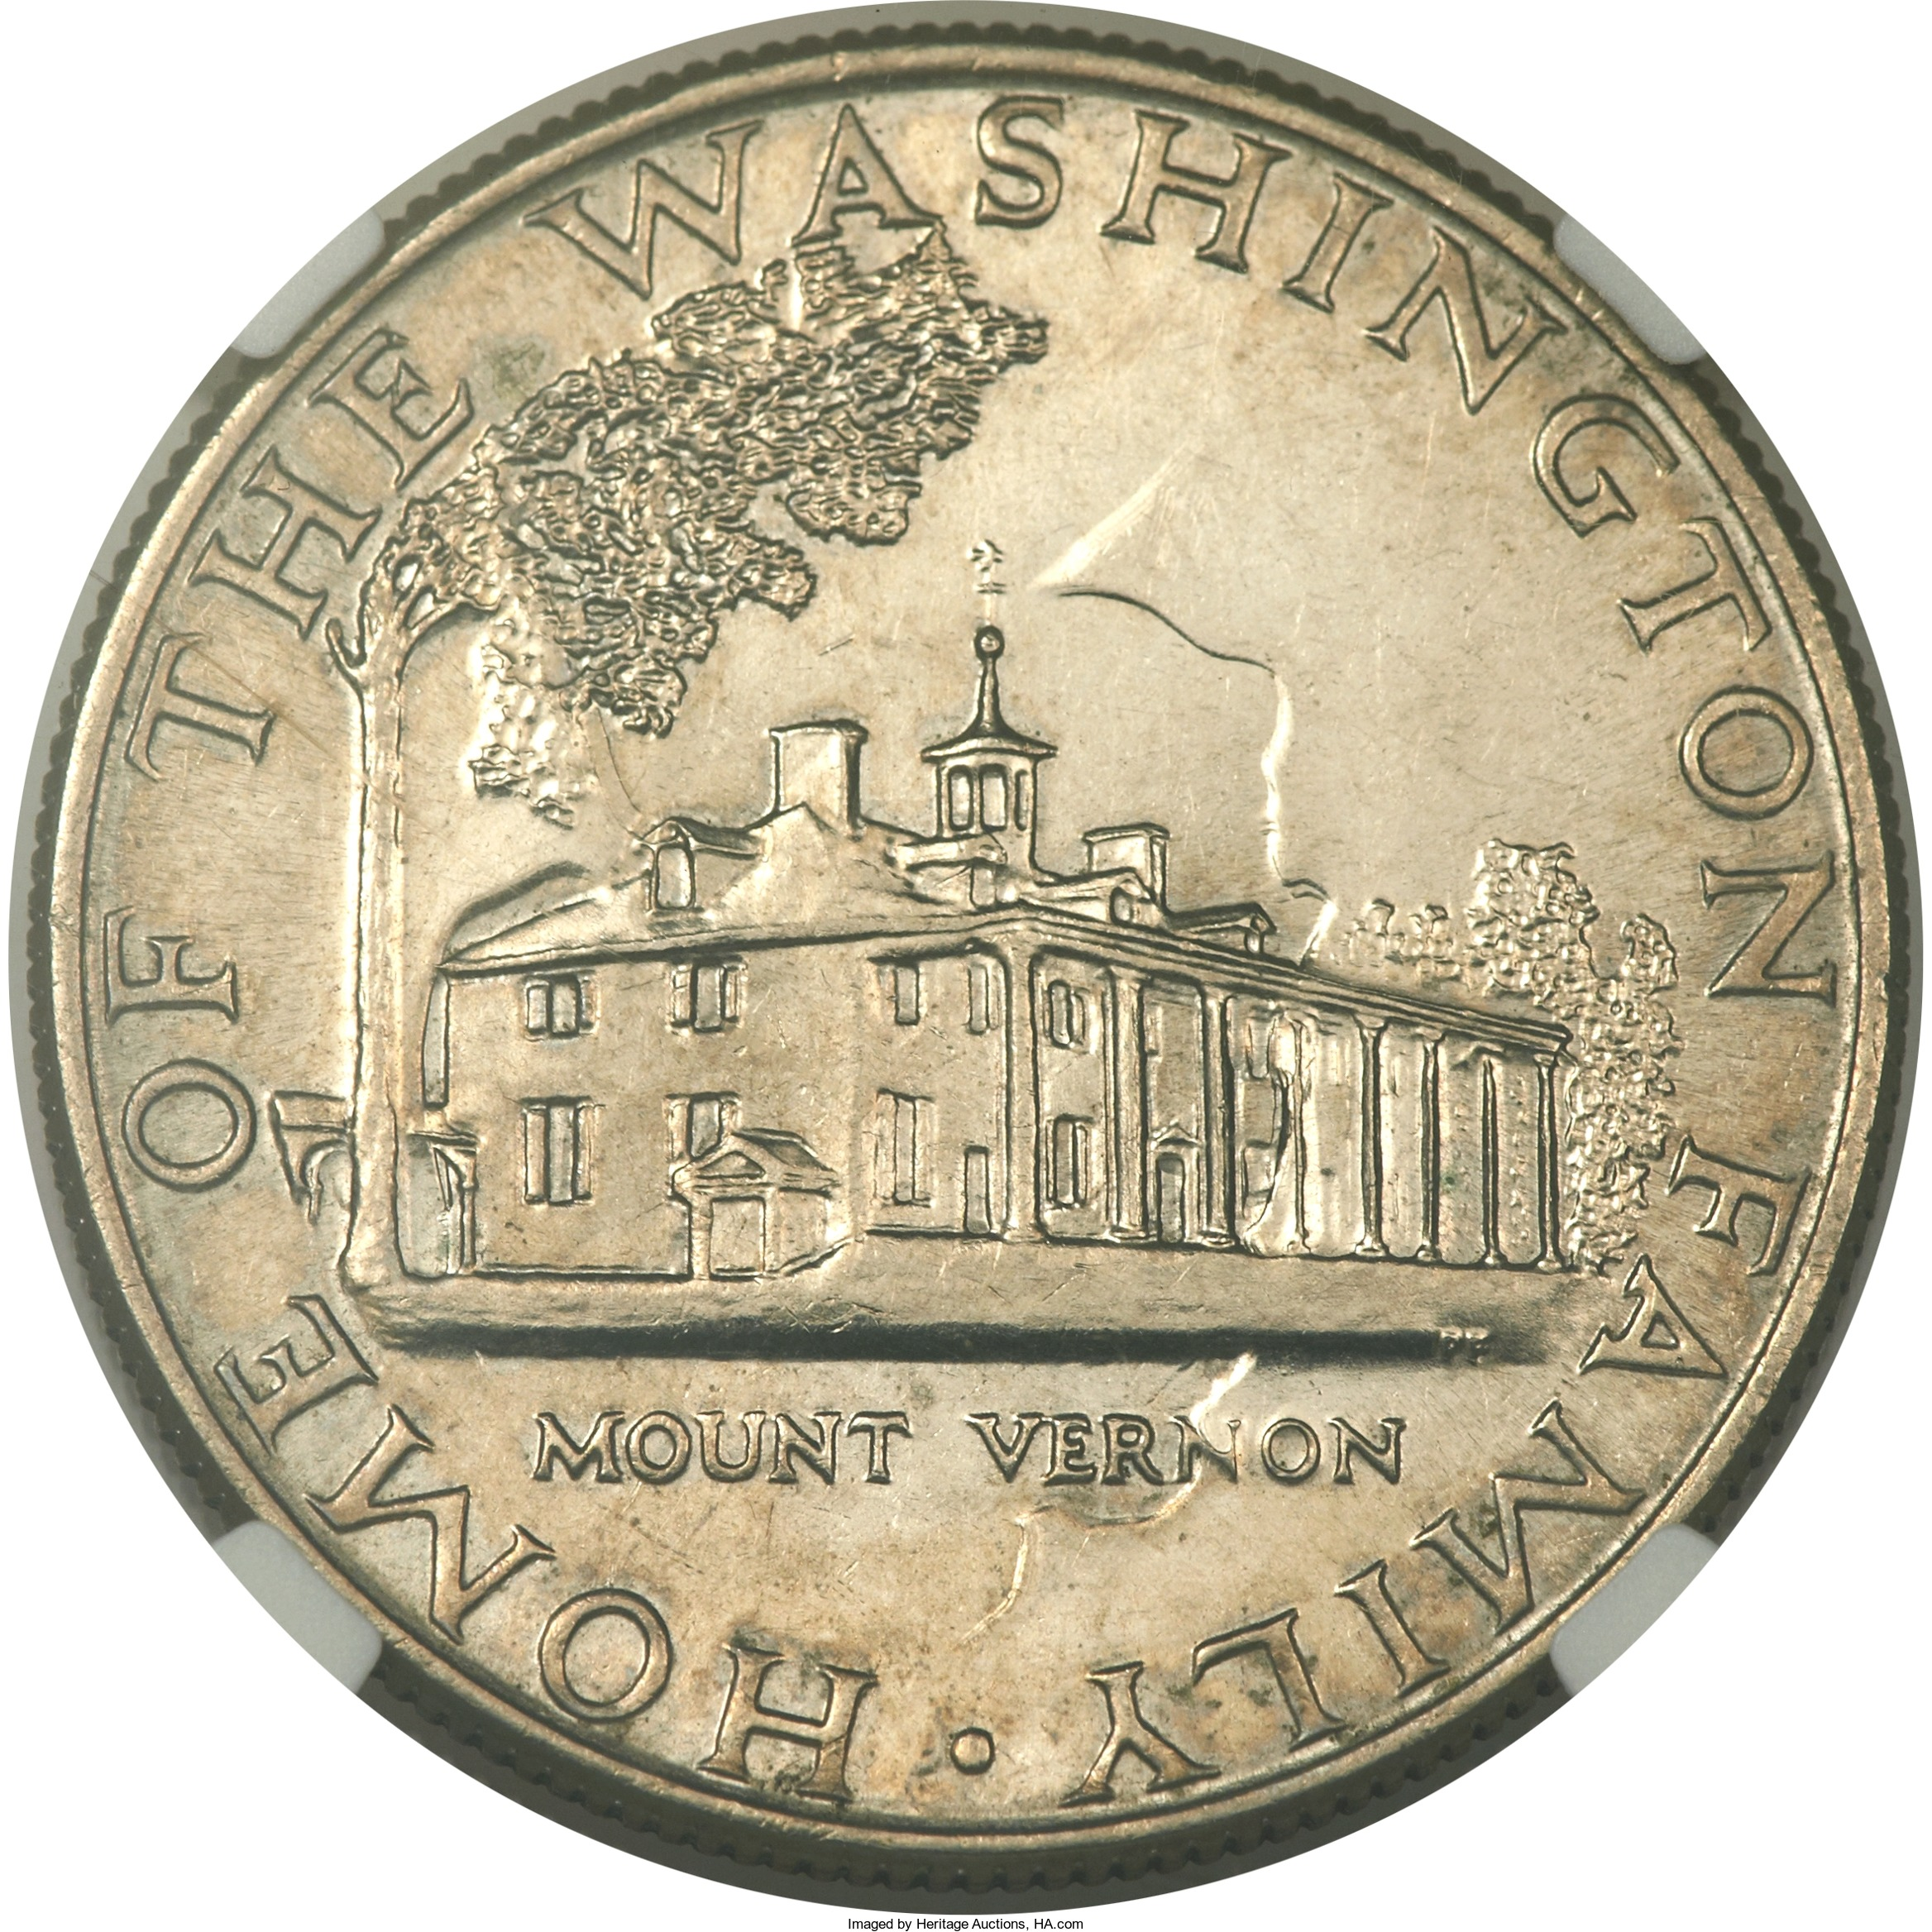 U.S. Mint Sculptor-Engraver Philip Fowler designed the reverse die used for the 1964 test pieces. His initials appear below the right side of Mount Vernon.